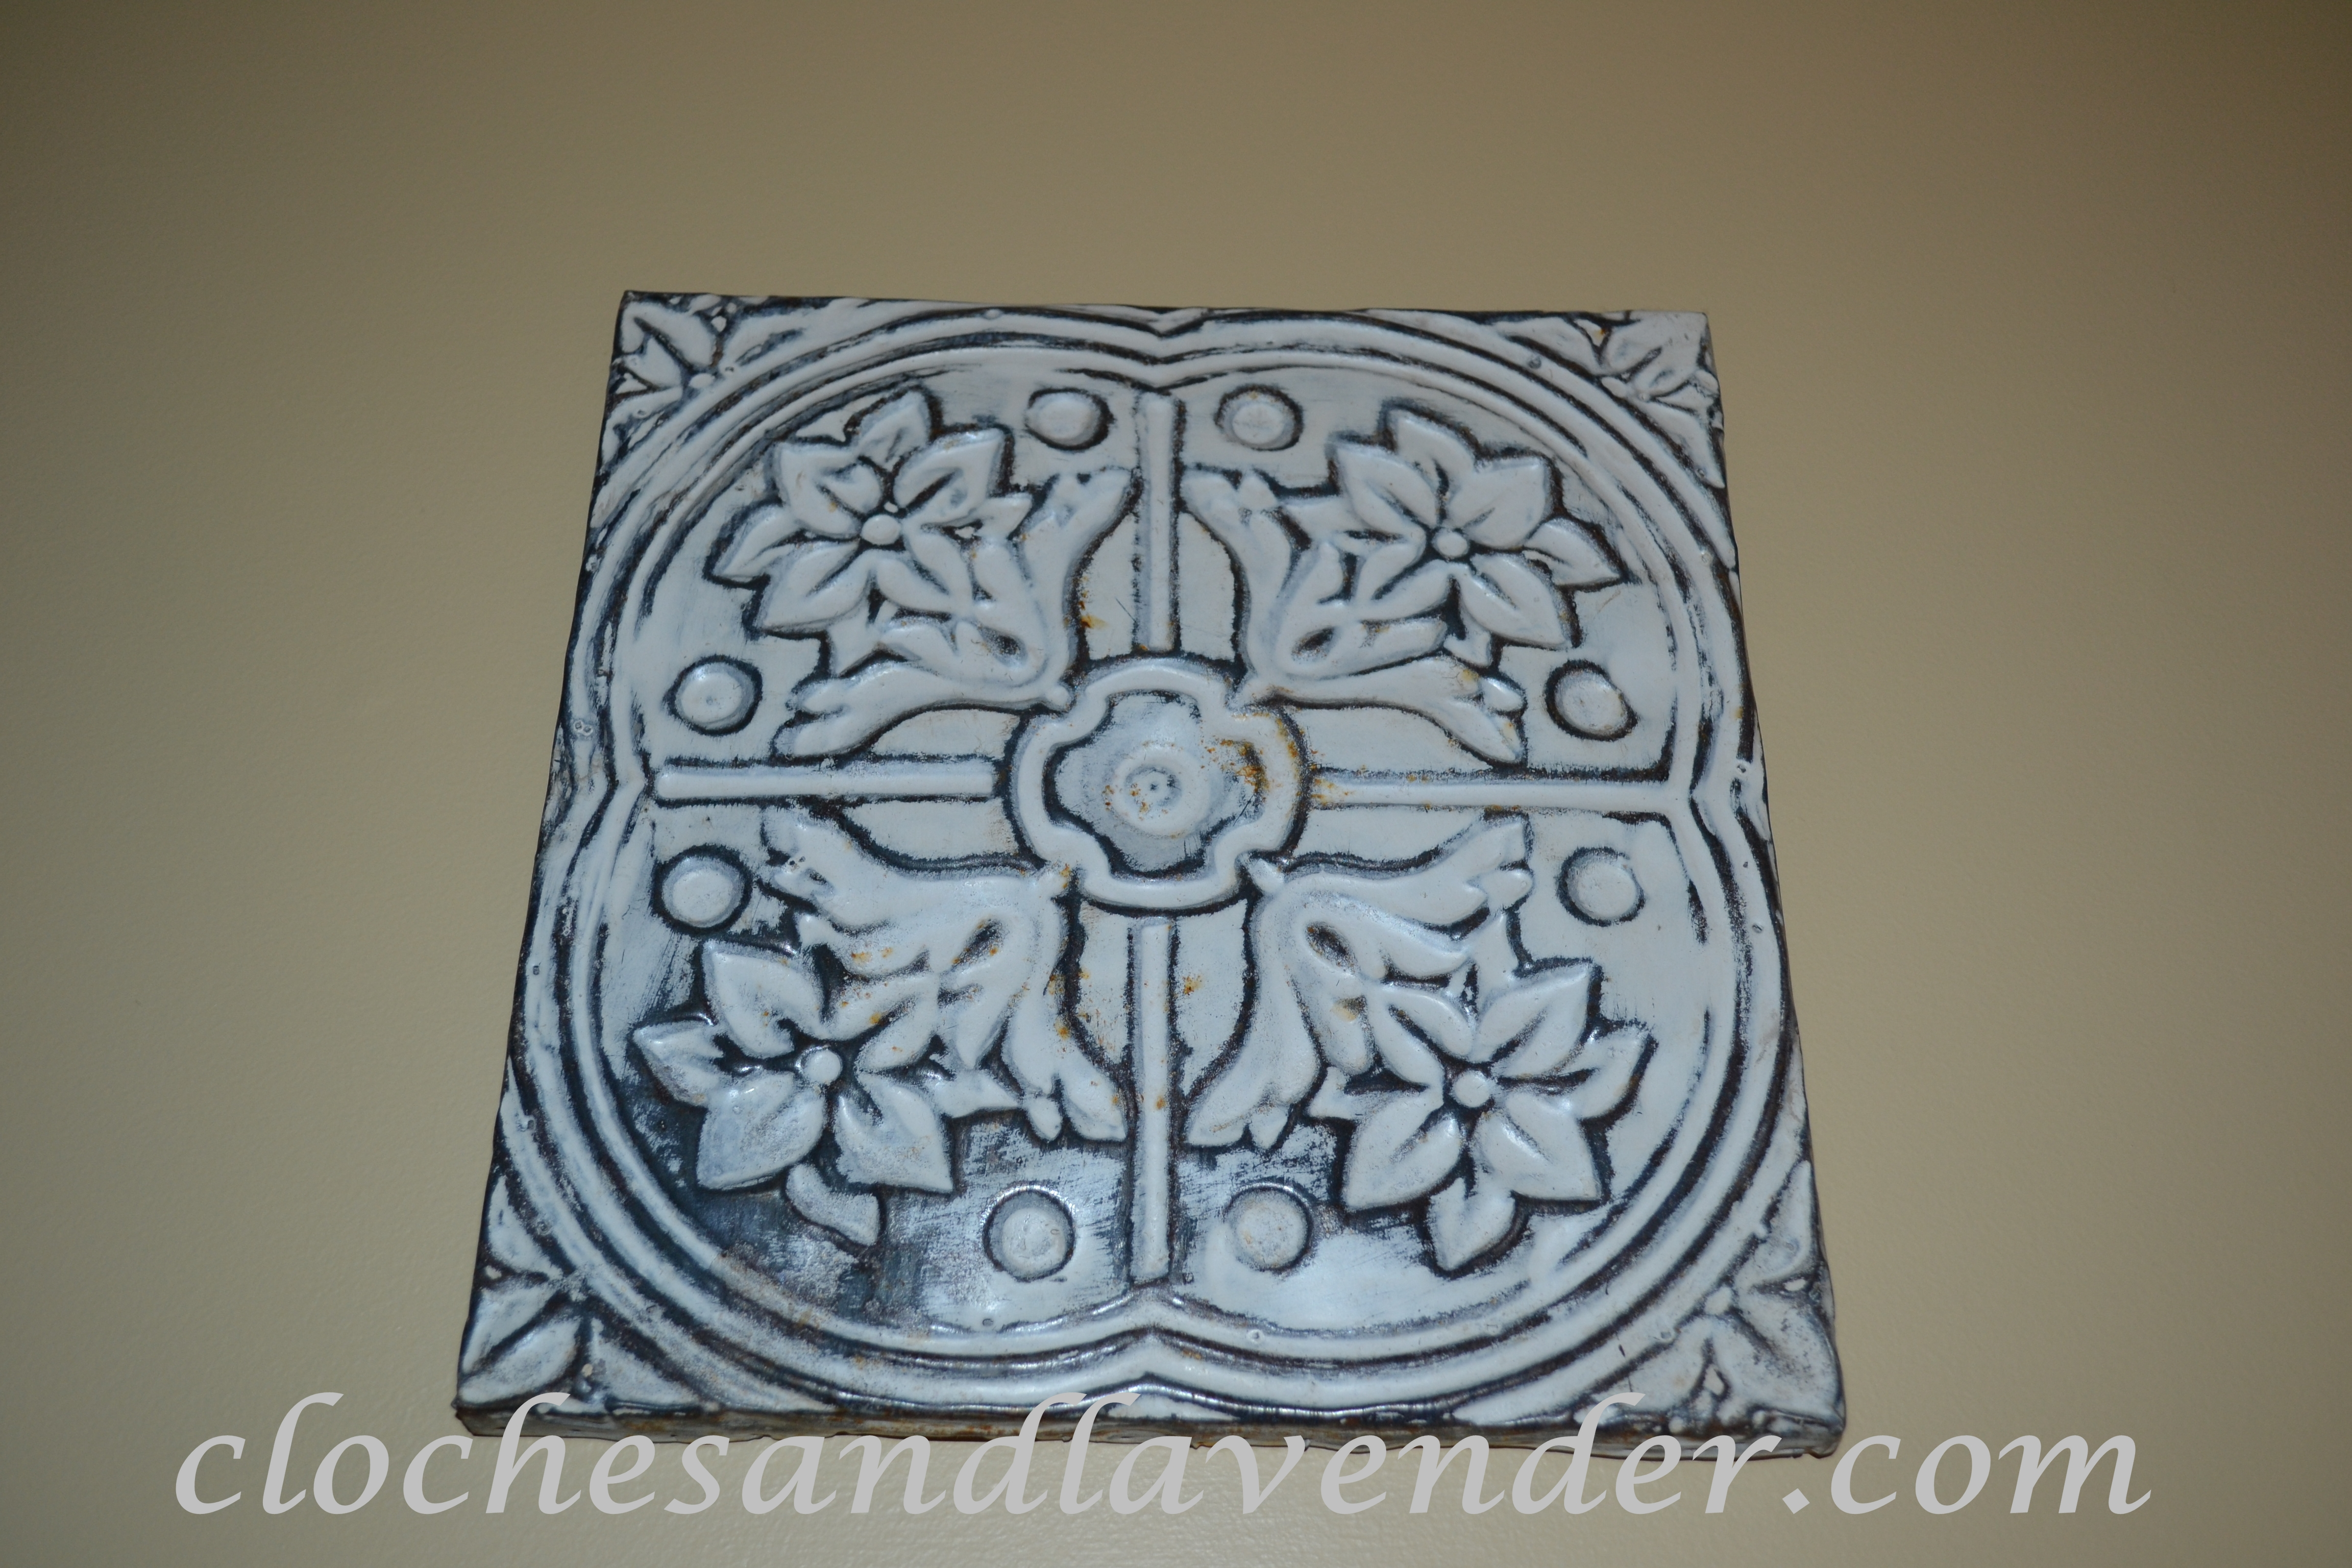 Ceiling Tile Wall Art Cloches Lavender